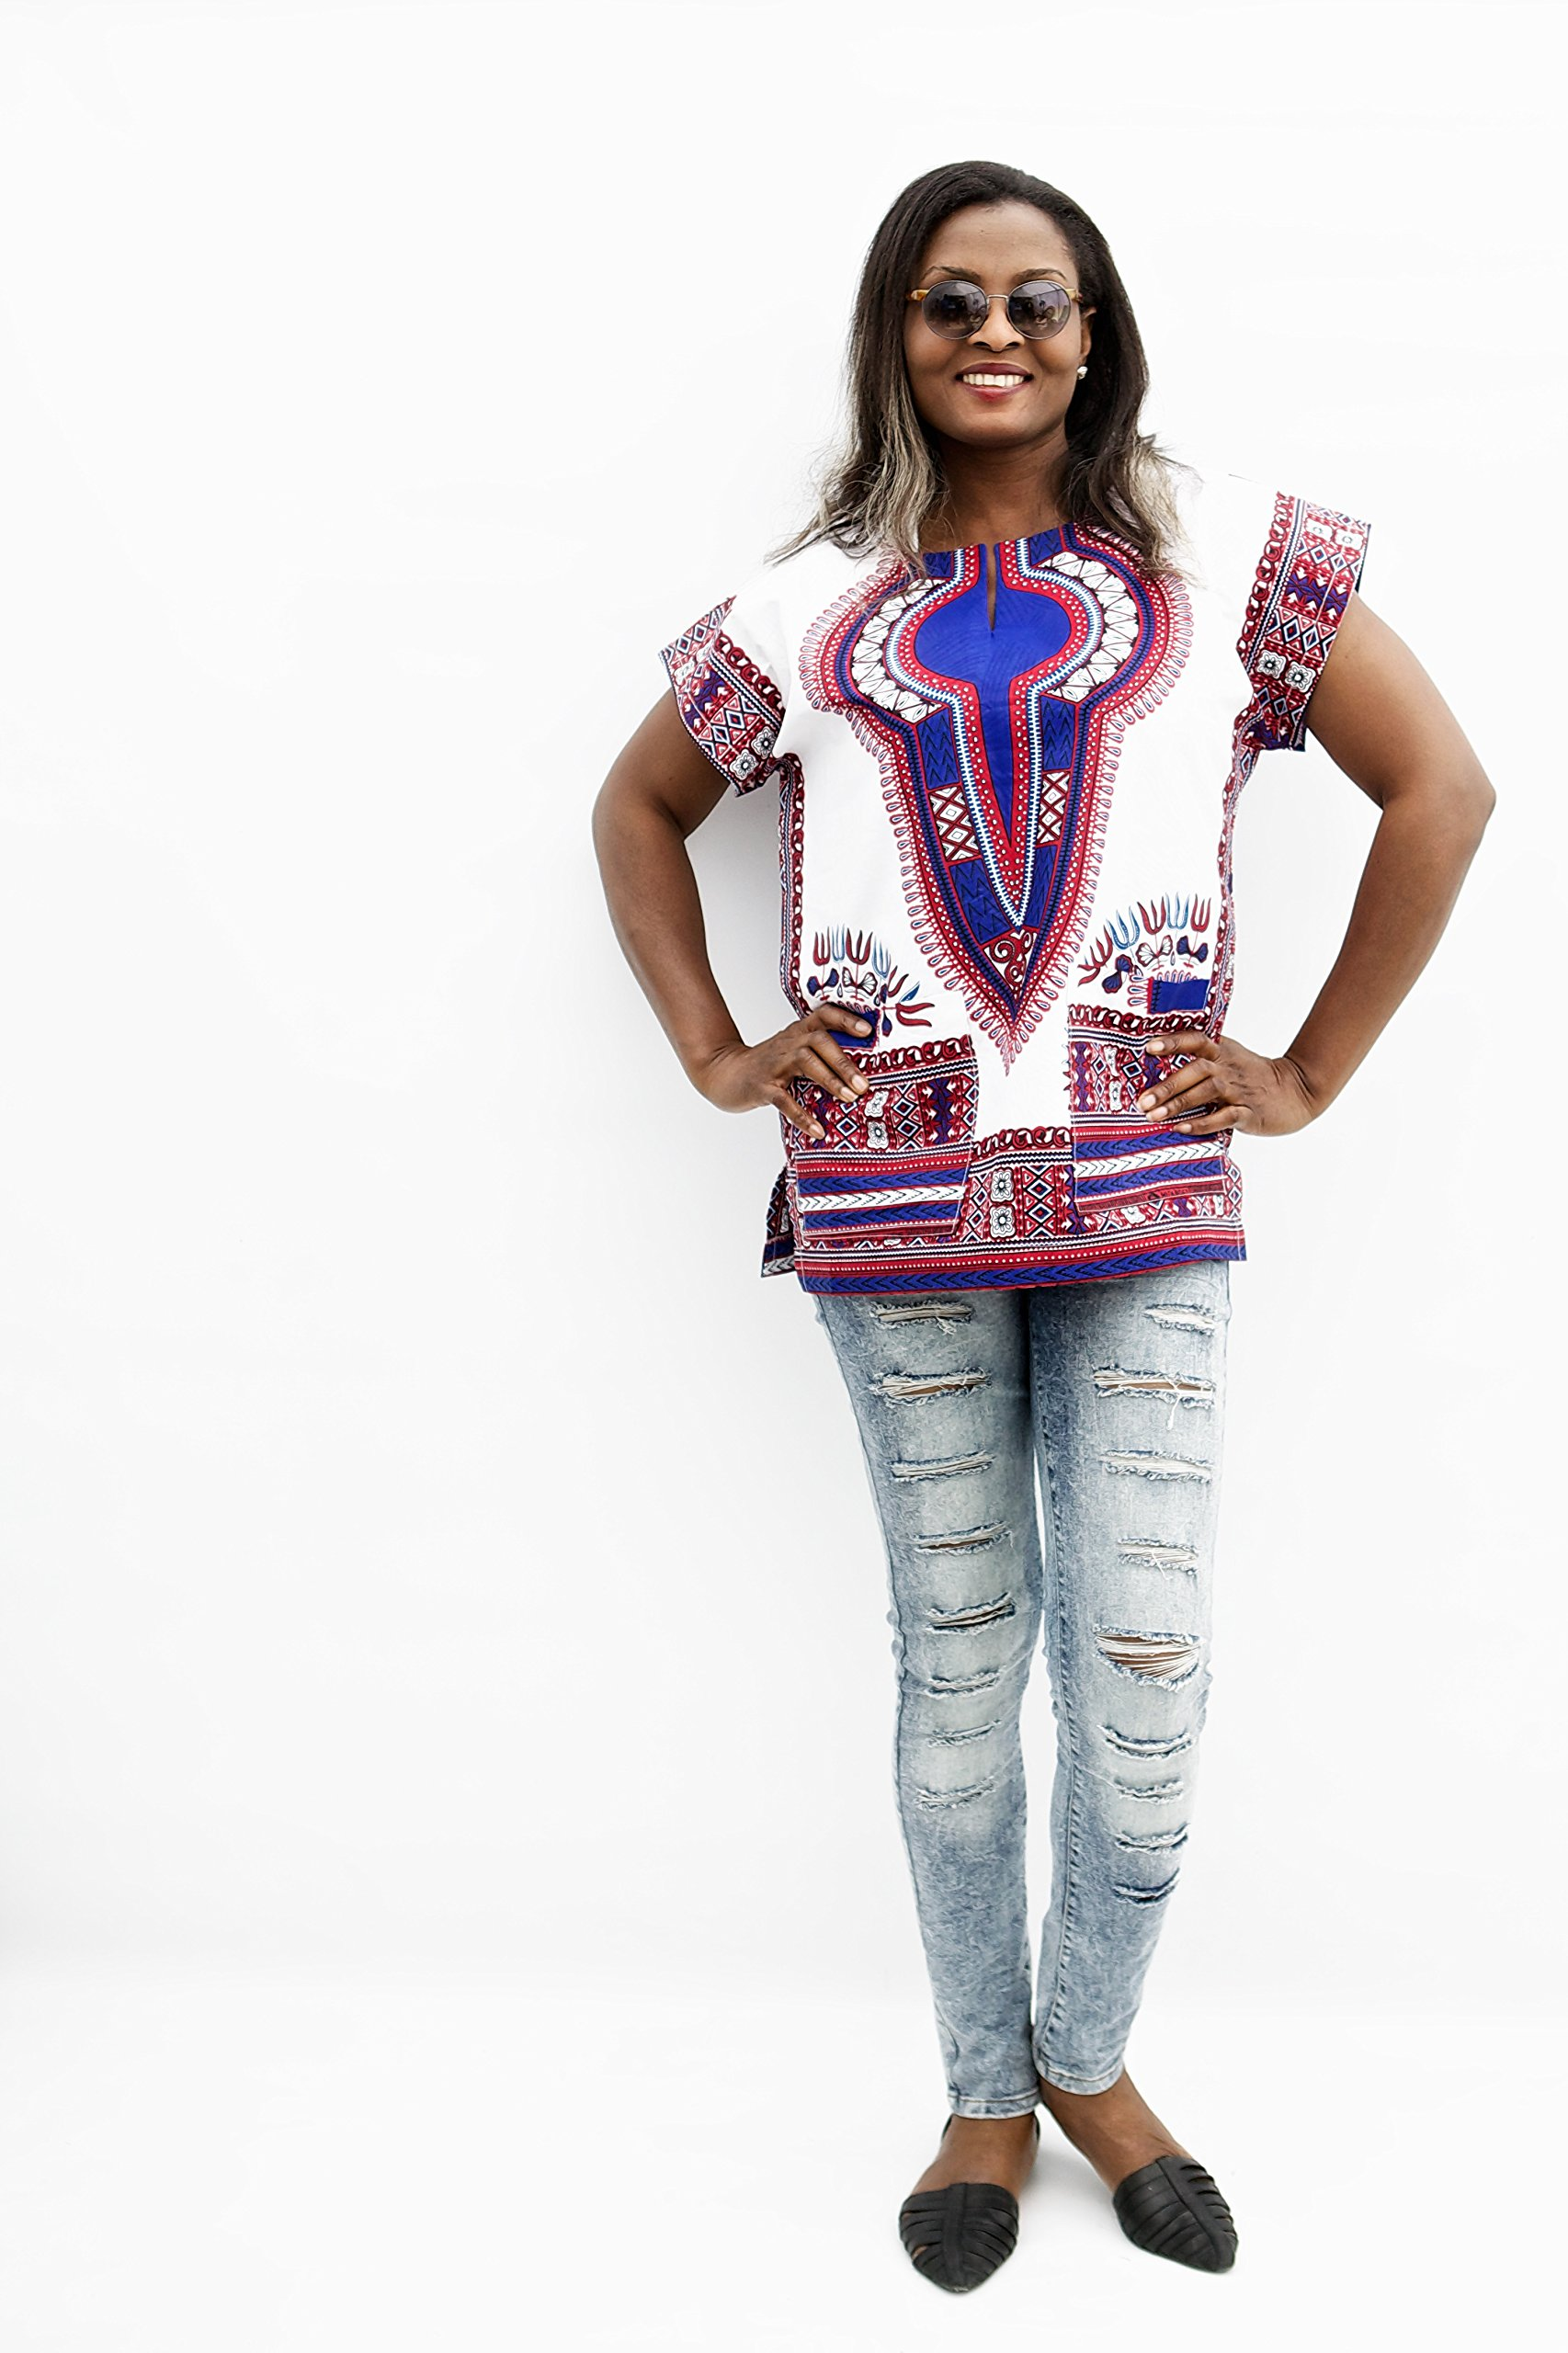 Pafric Designs African Clothing Dashiki For Men and Women - Best Traditional Print Clothes For All Occasion - Made From High Quality Polished Cotton - Love It Or Your Money Back (L-XL, DA021)